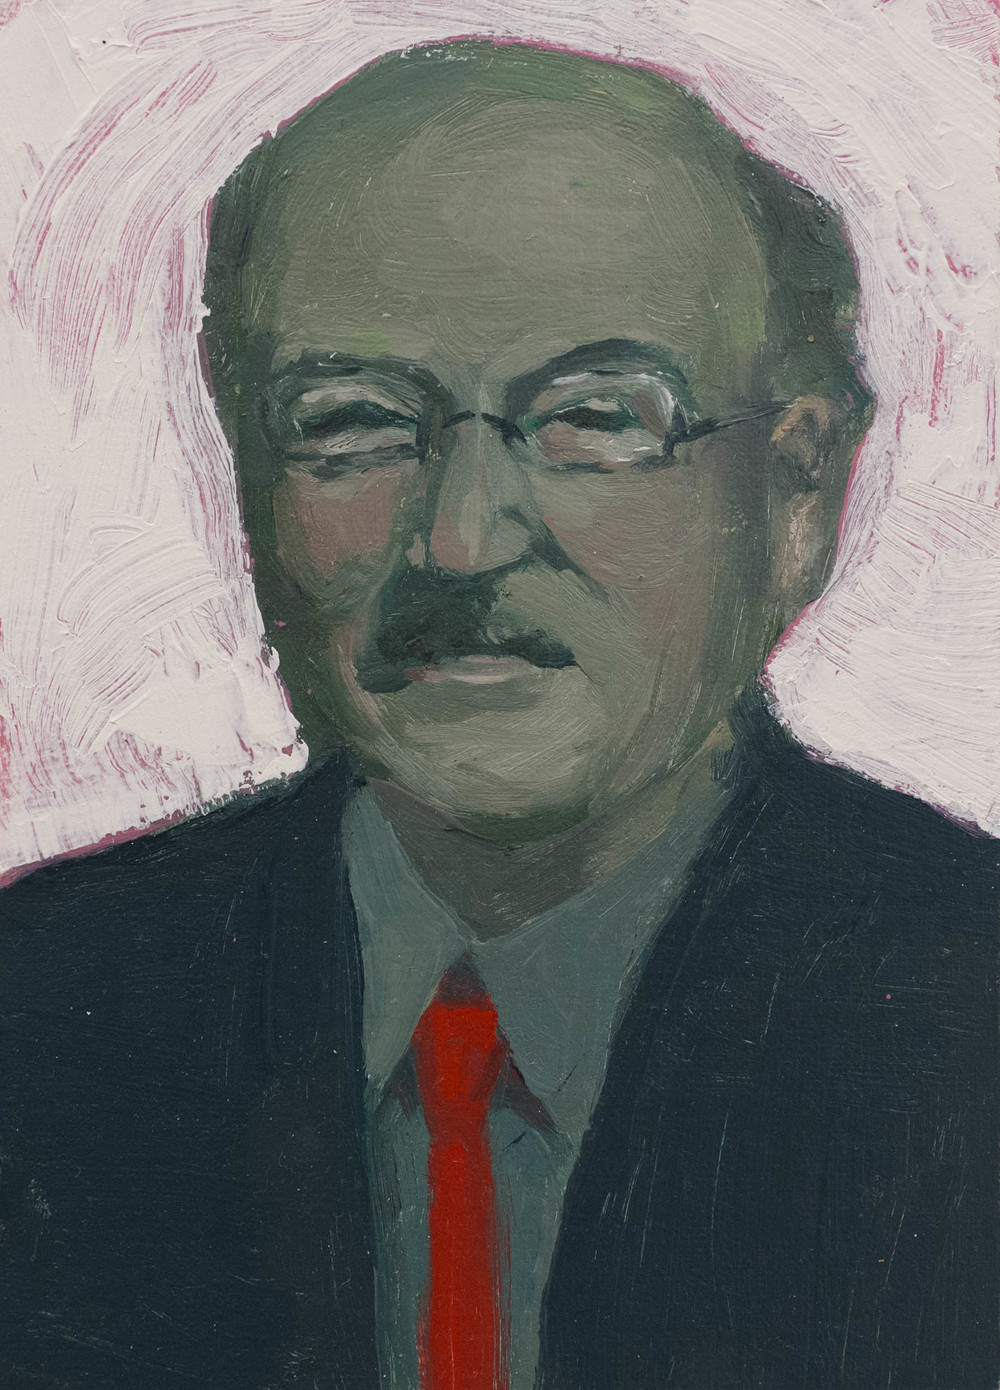 Portrait of Volker Schlondorff  5 x 7 in  oil, mix media on panel